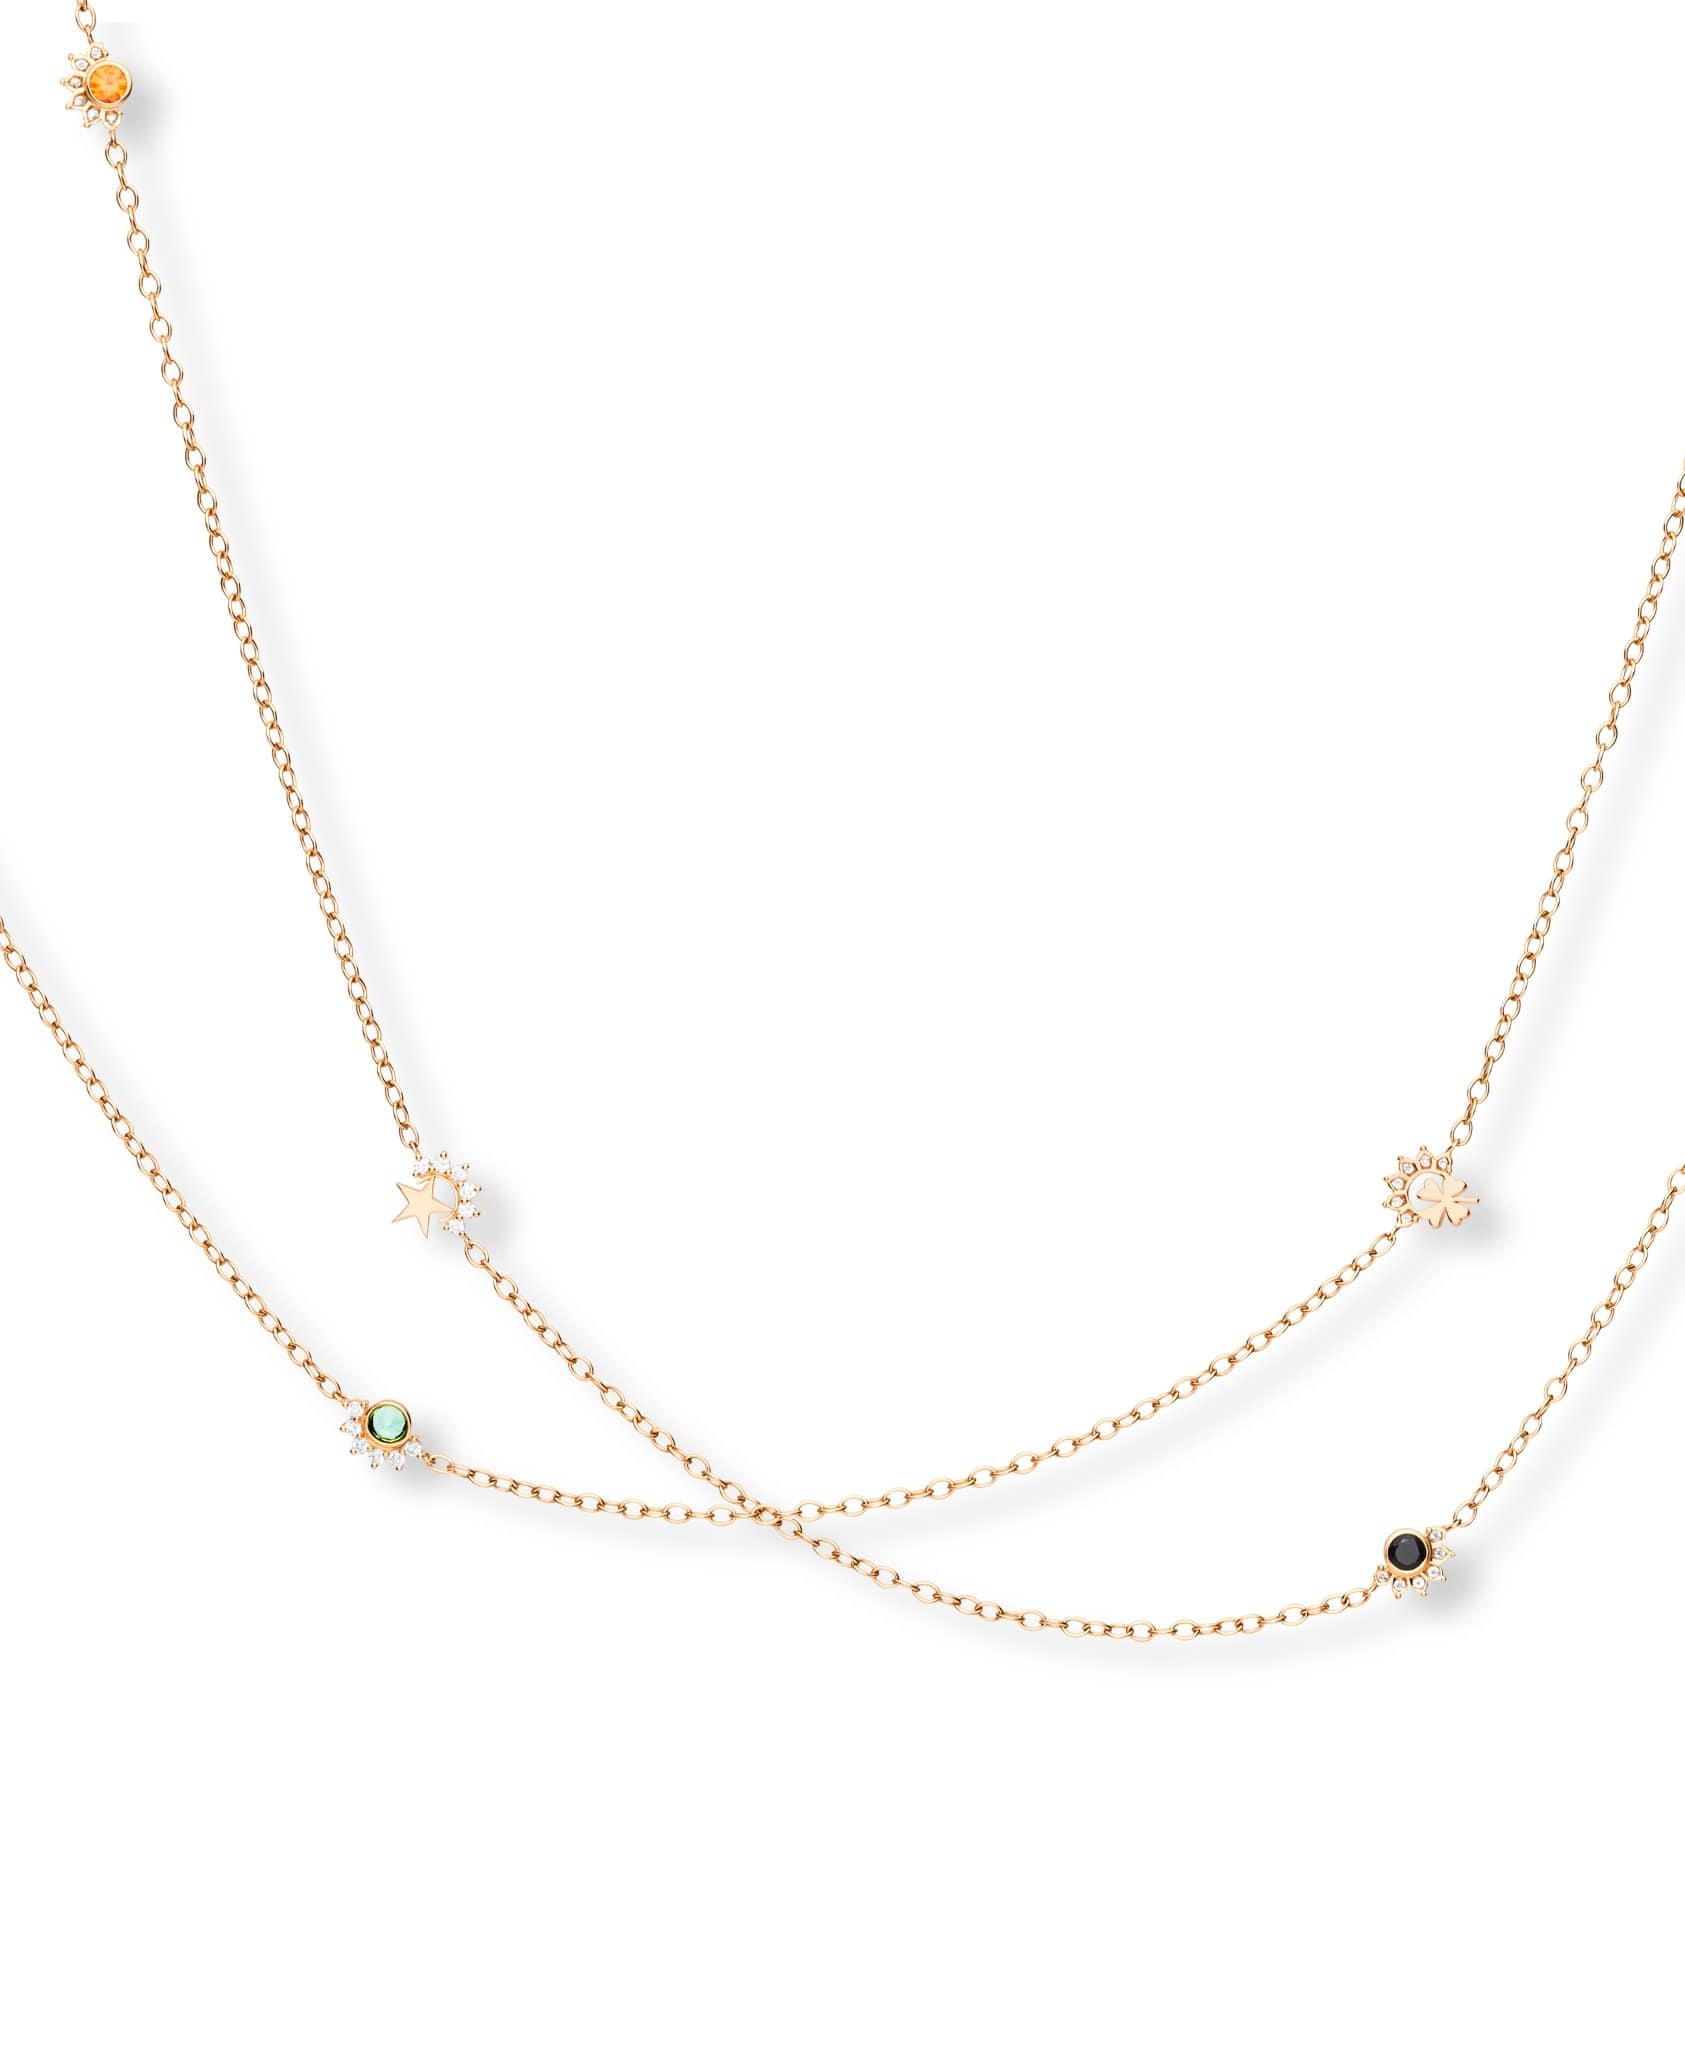 Multi-Motifs Long Necklace: Discover Luxury Fine Jewelry | Nouvel Heritage